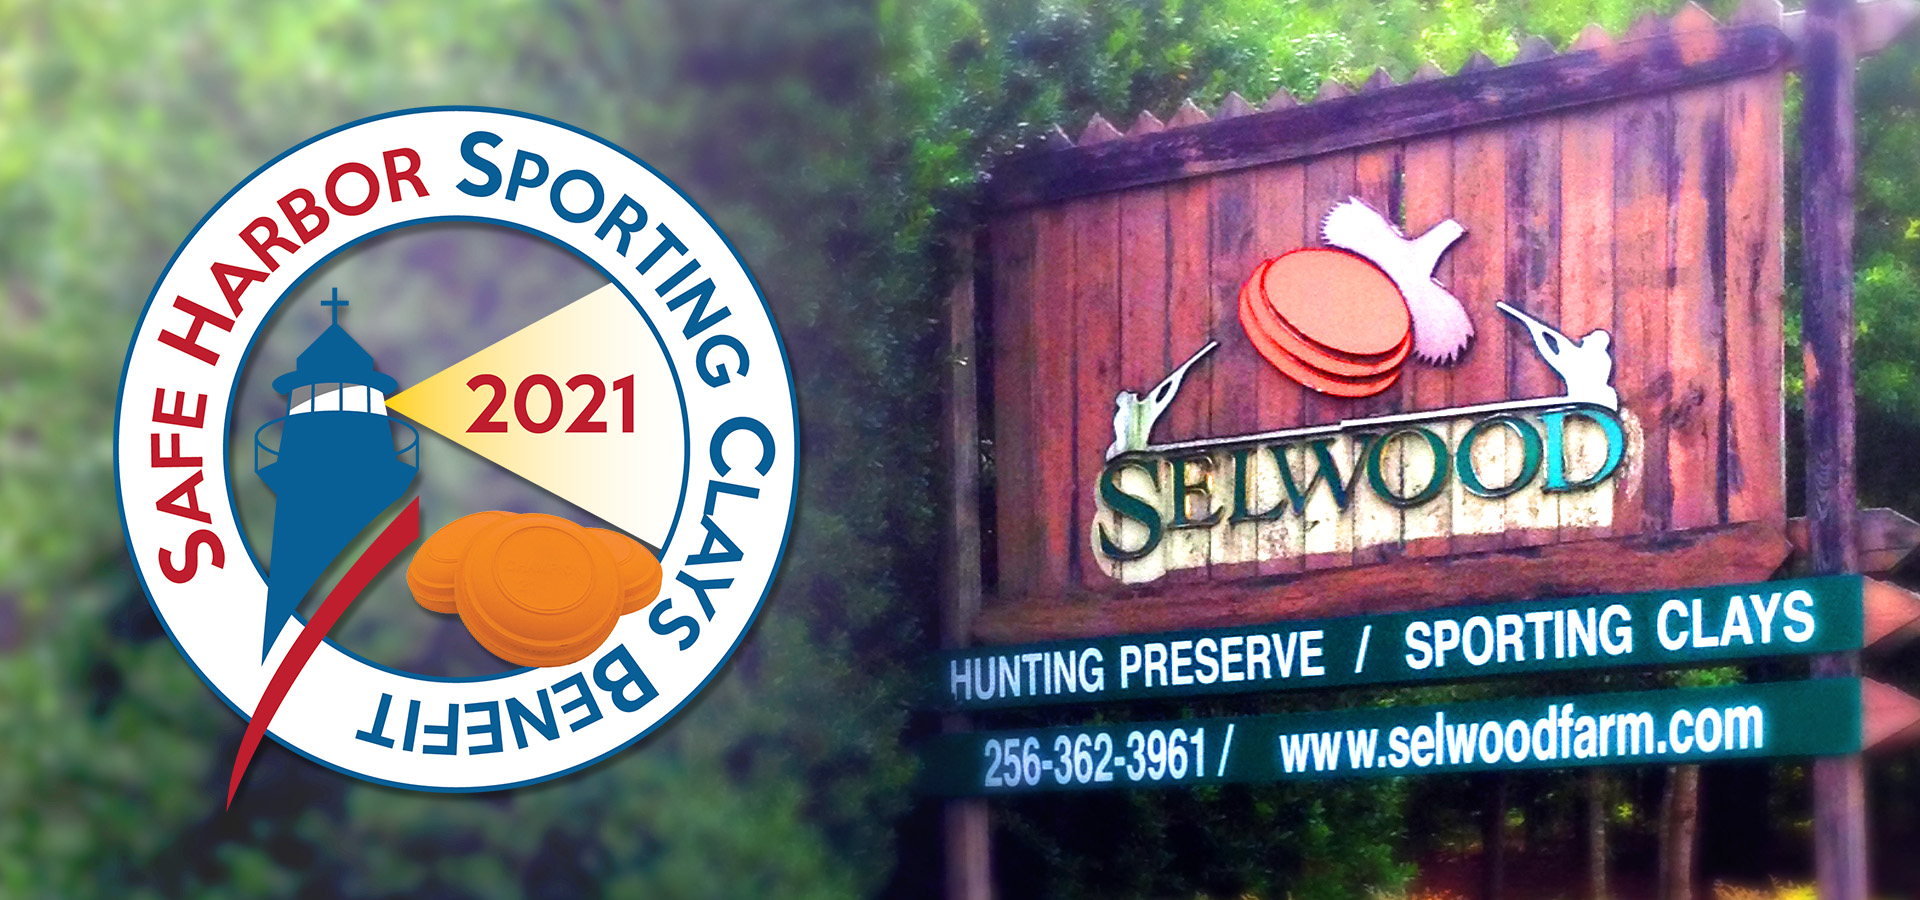 2021 Sporting Clays Event Benefiting The Safe Harbor In Birmingham AL.